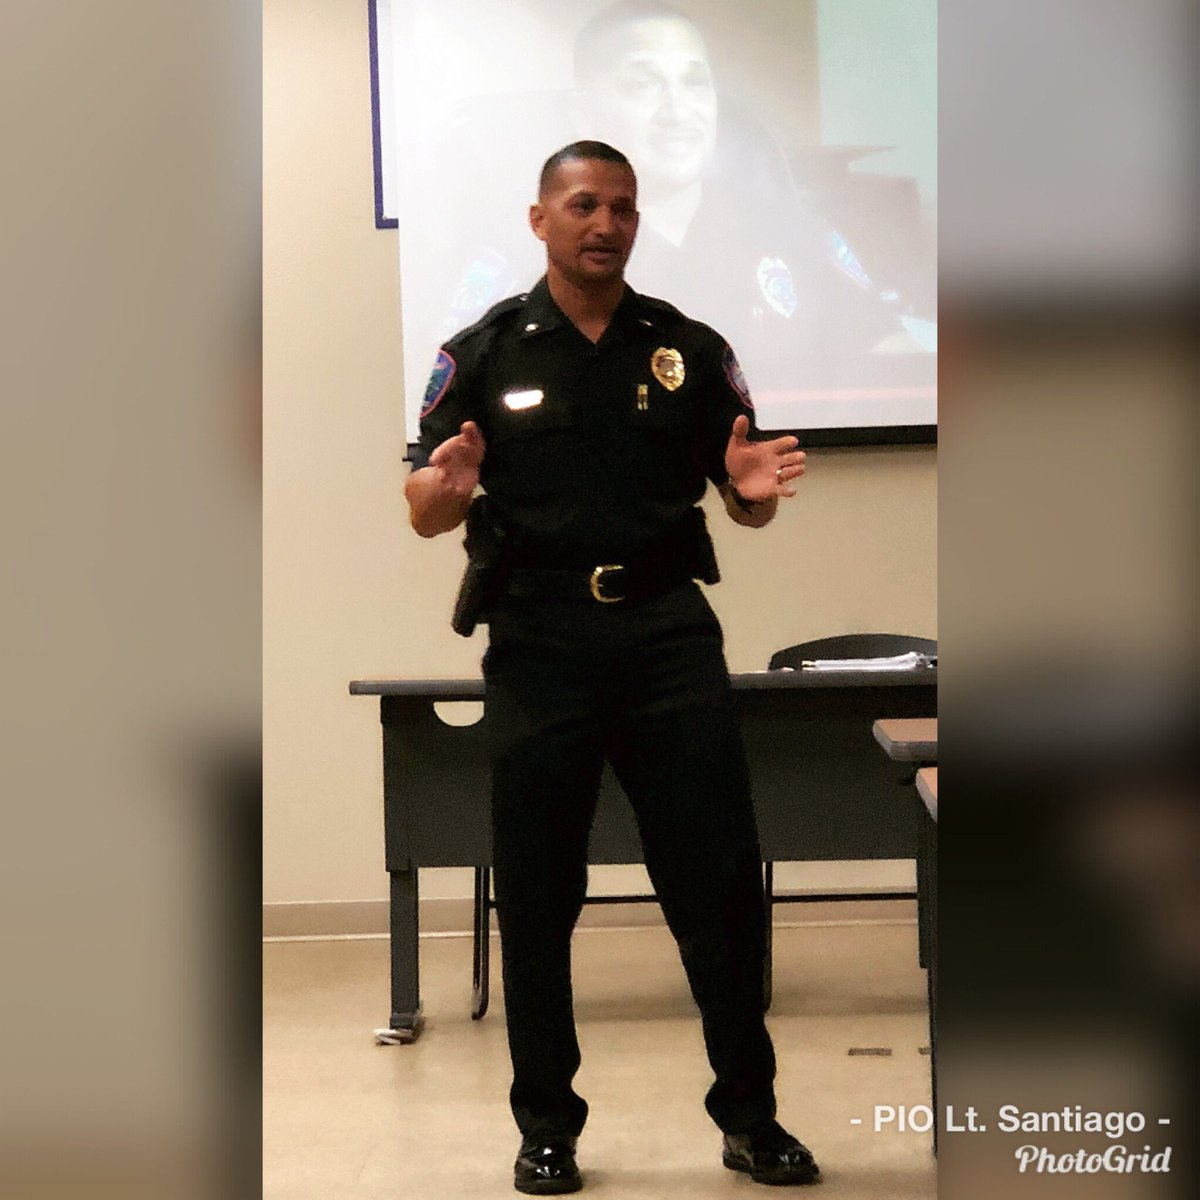 PIO Lt. Santiago speaking